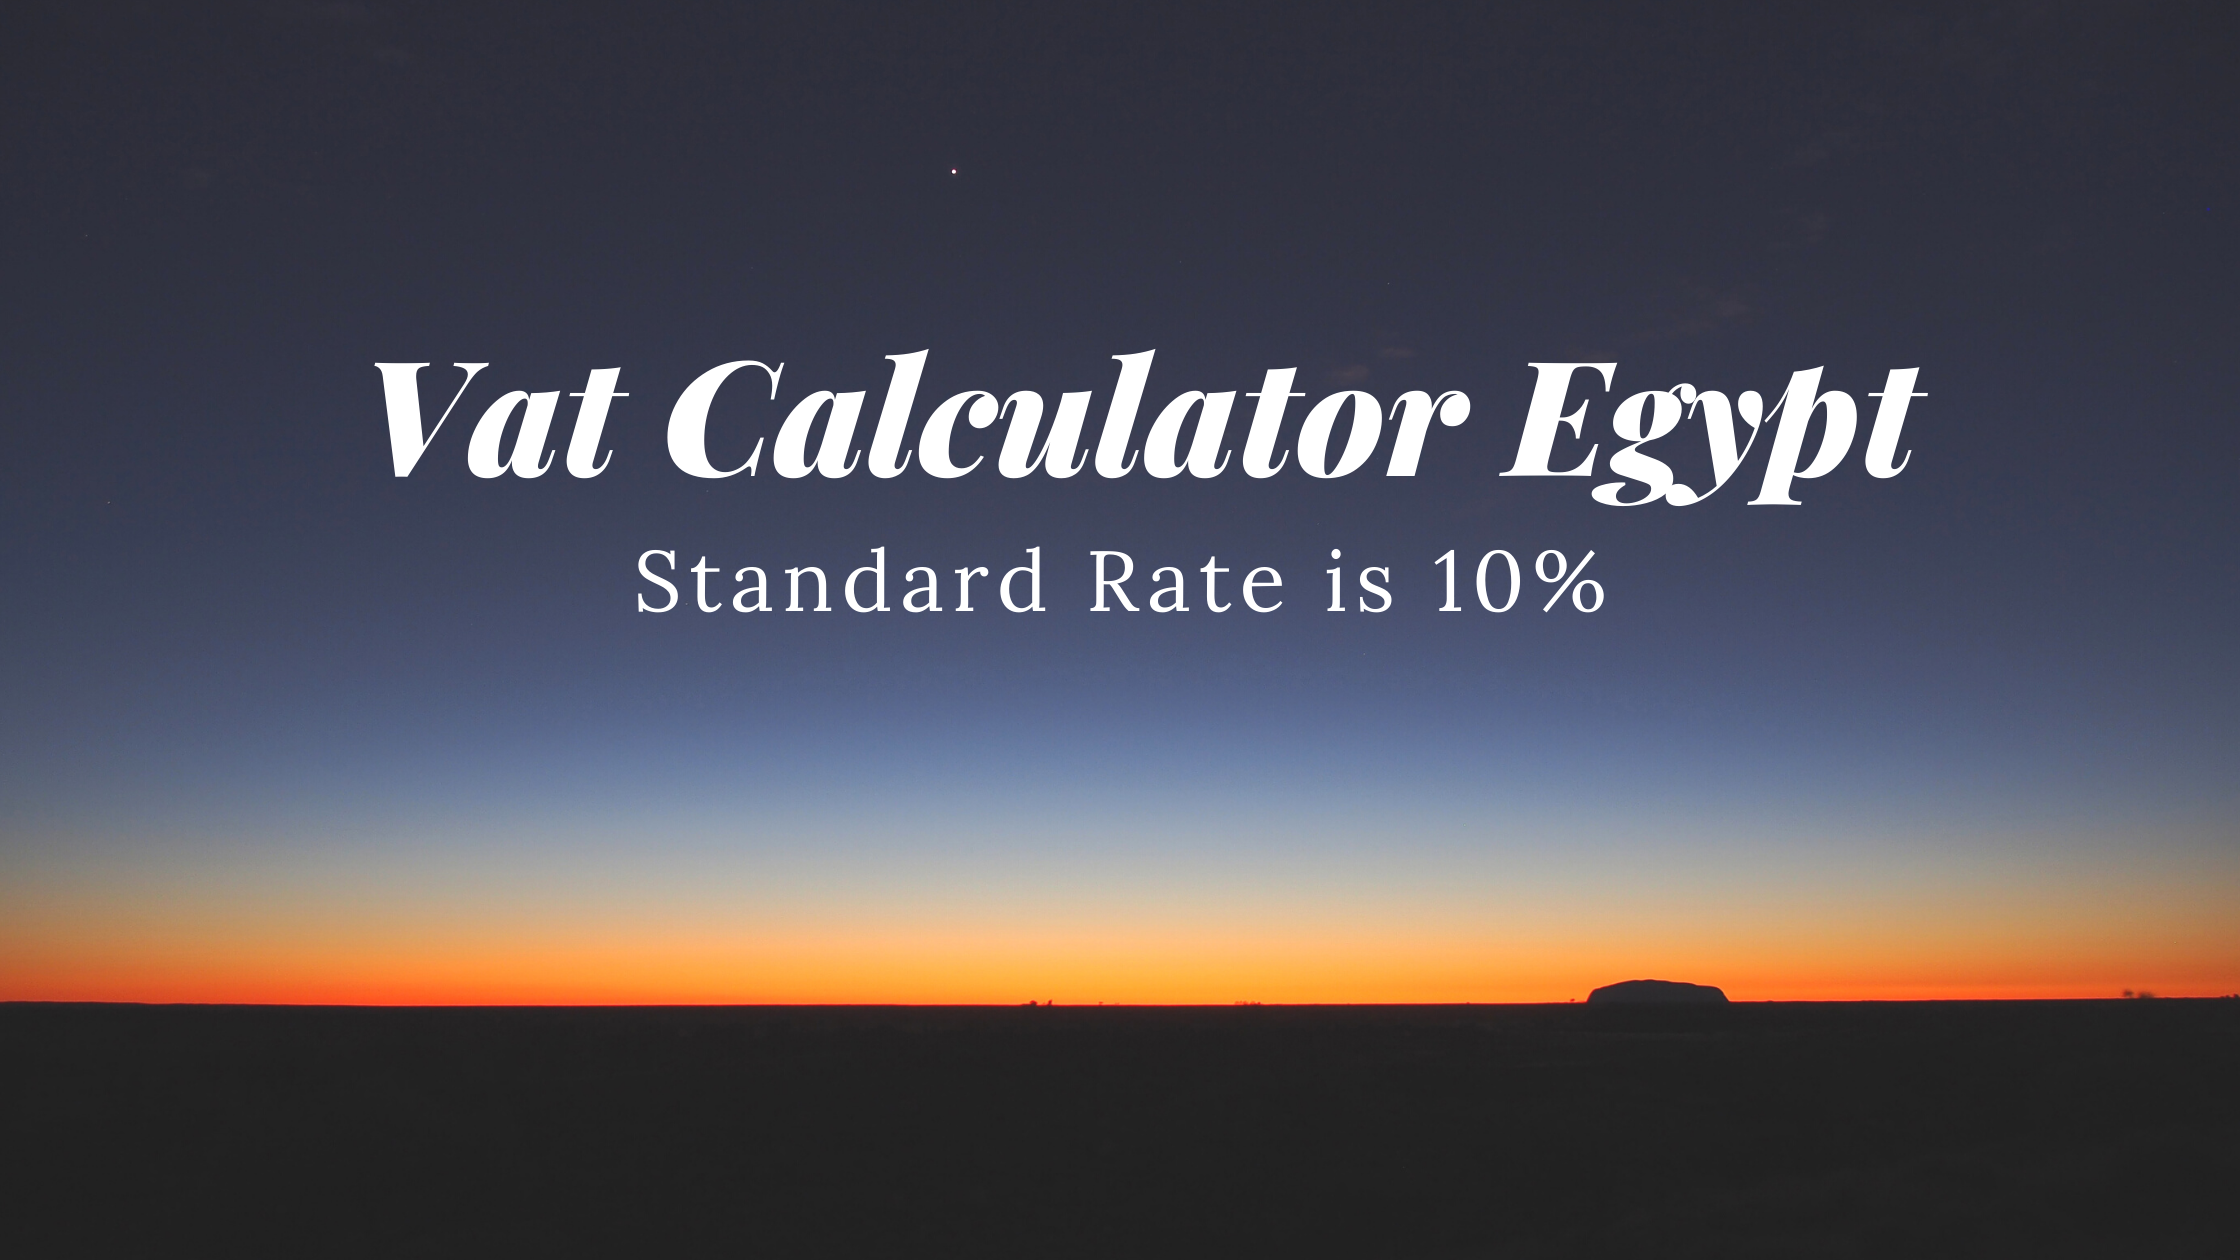 Vat Calculator Egypt